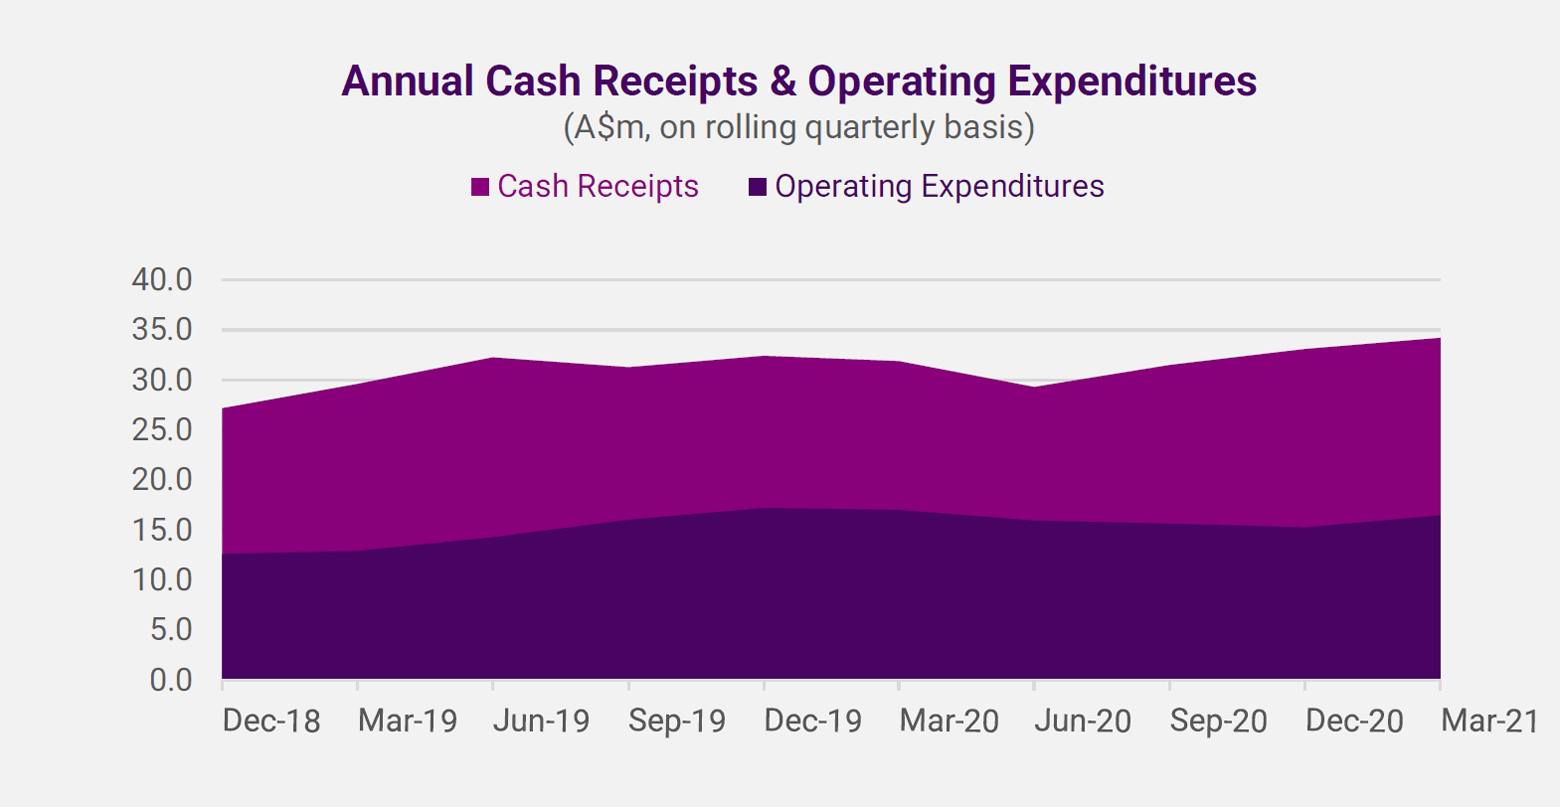 Annual cash receipts & operating expenditures graph